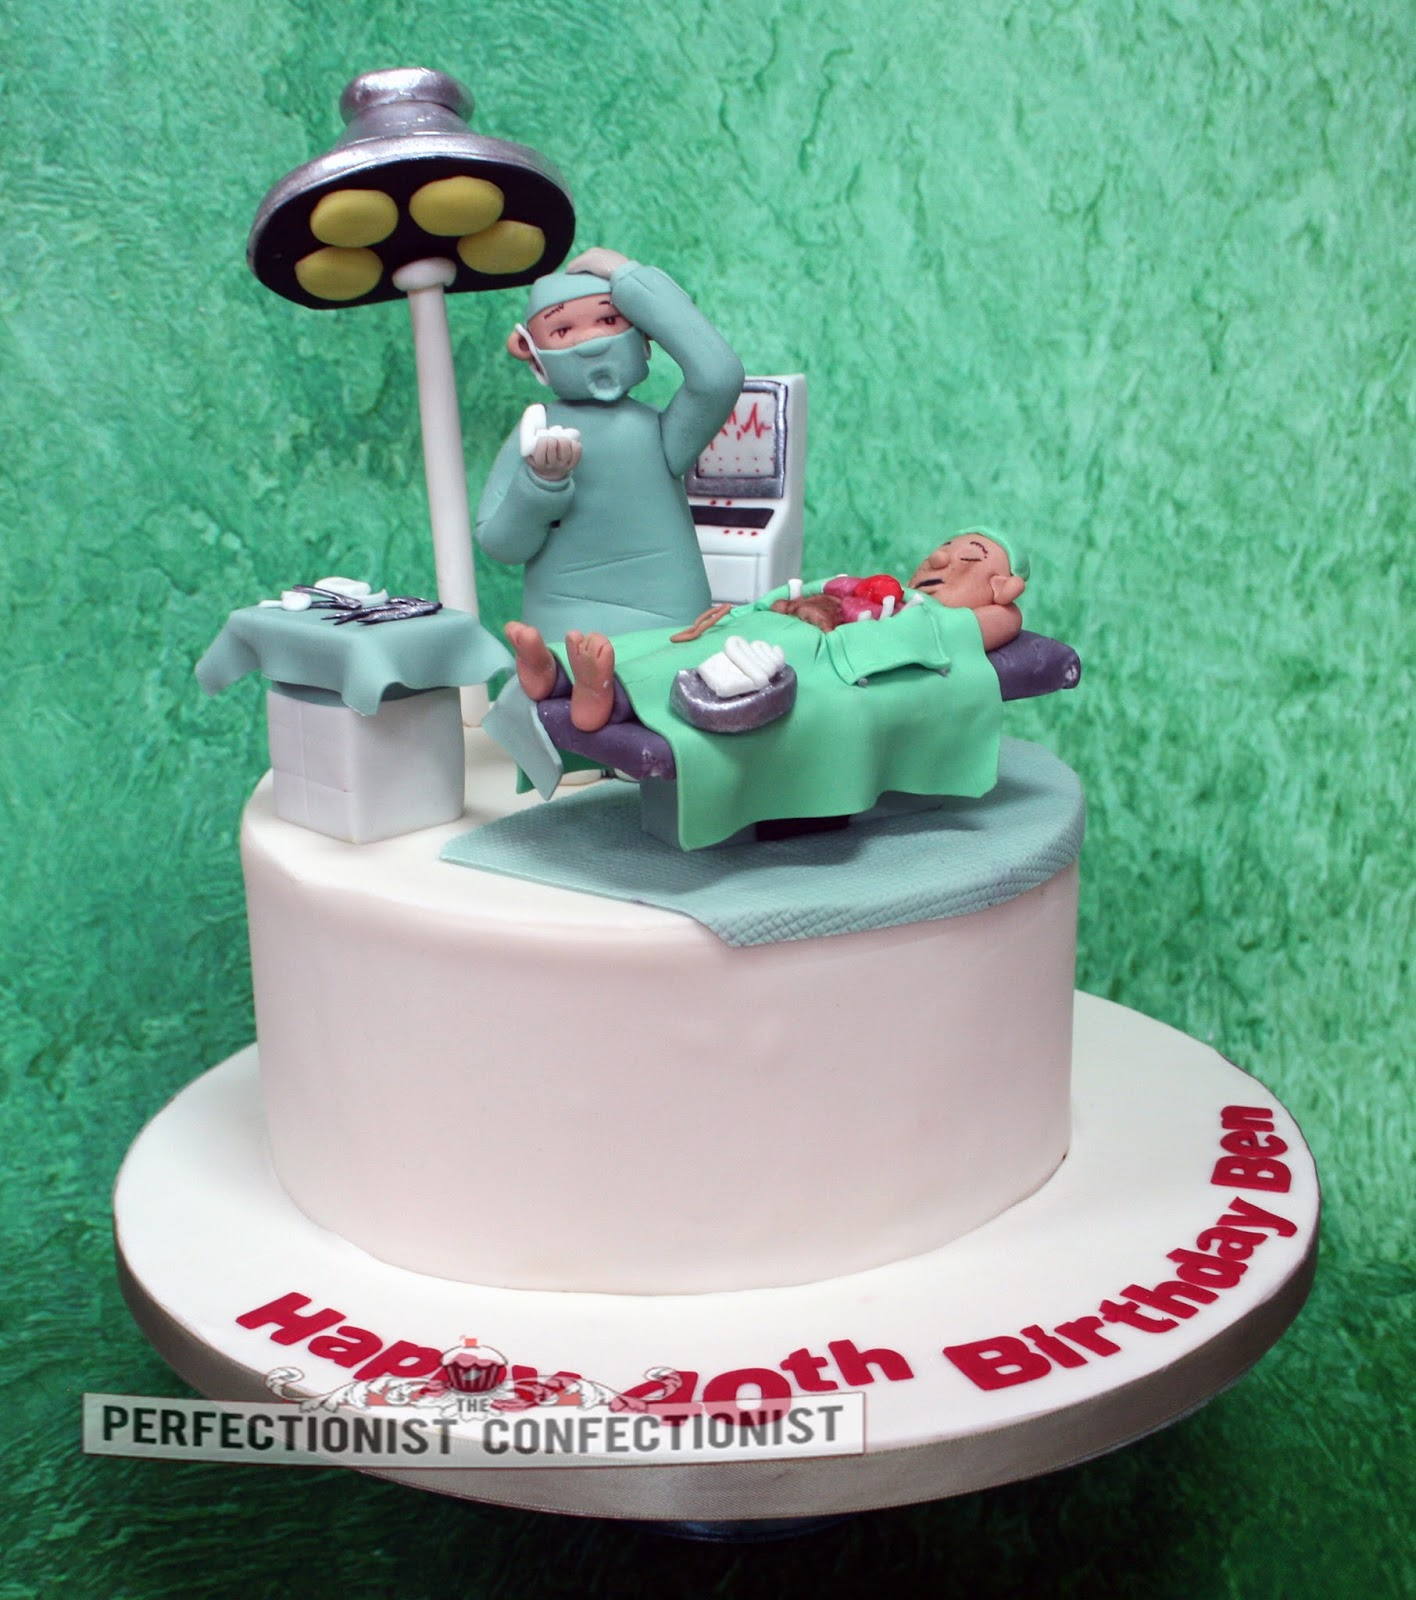 The Perfectionist Confectionist Ben Heart Surgeon 40th Birthday Cake